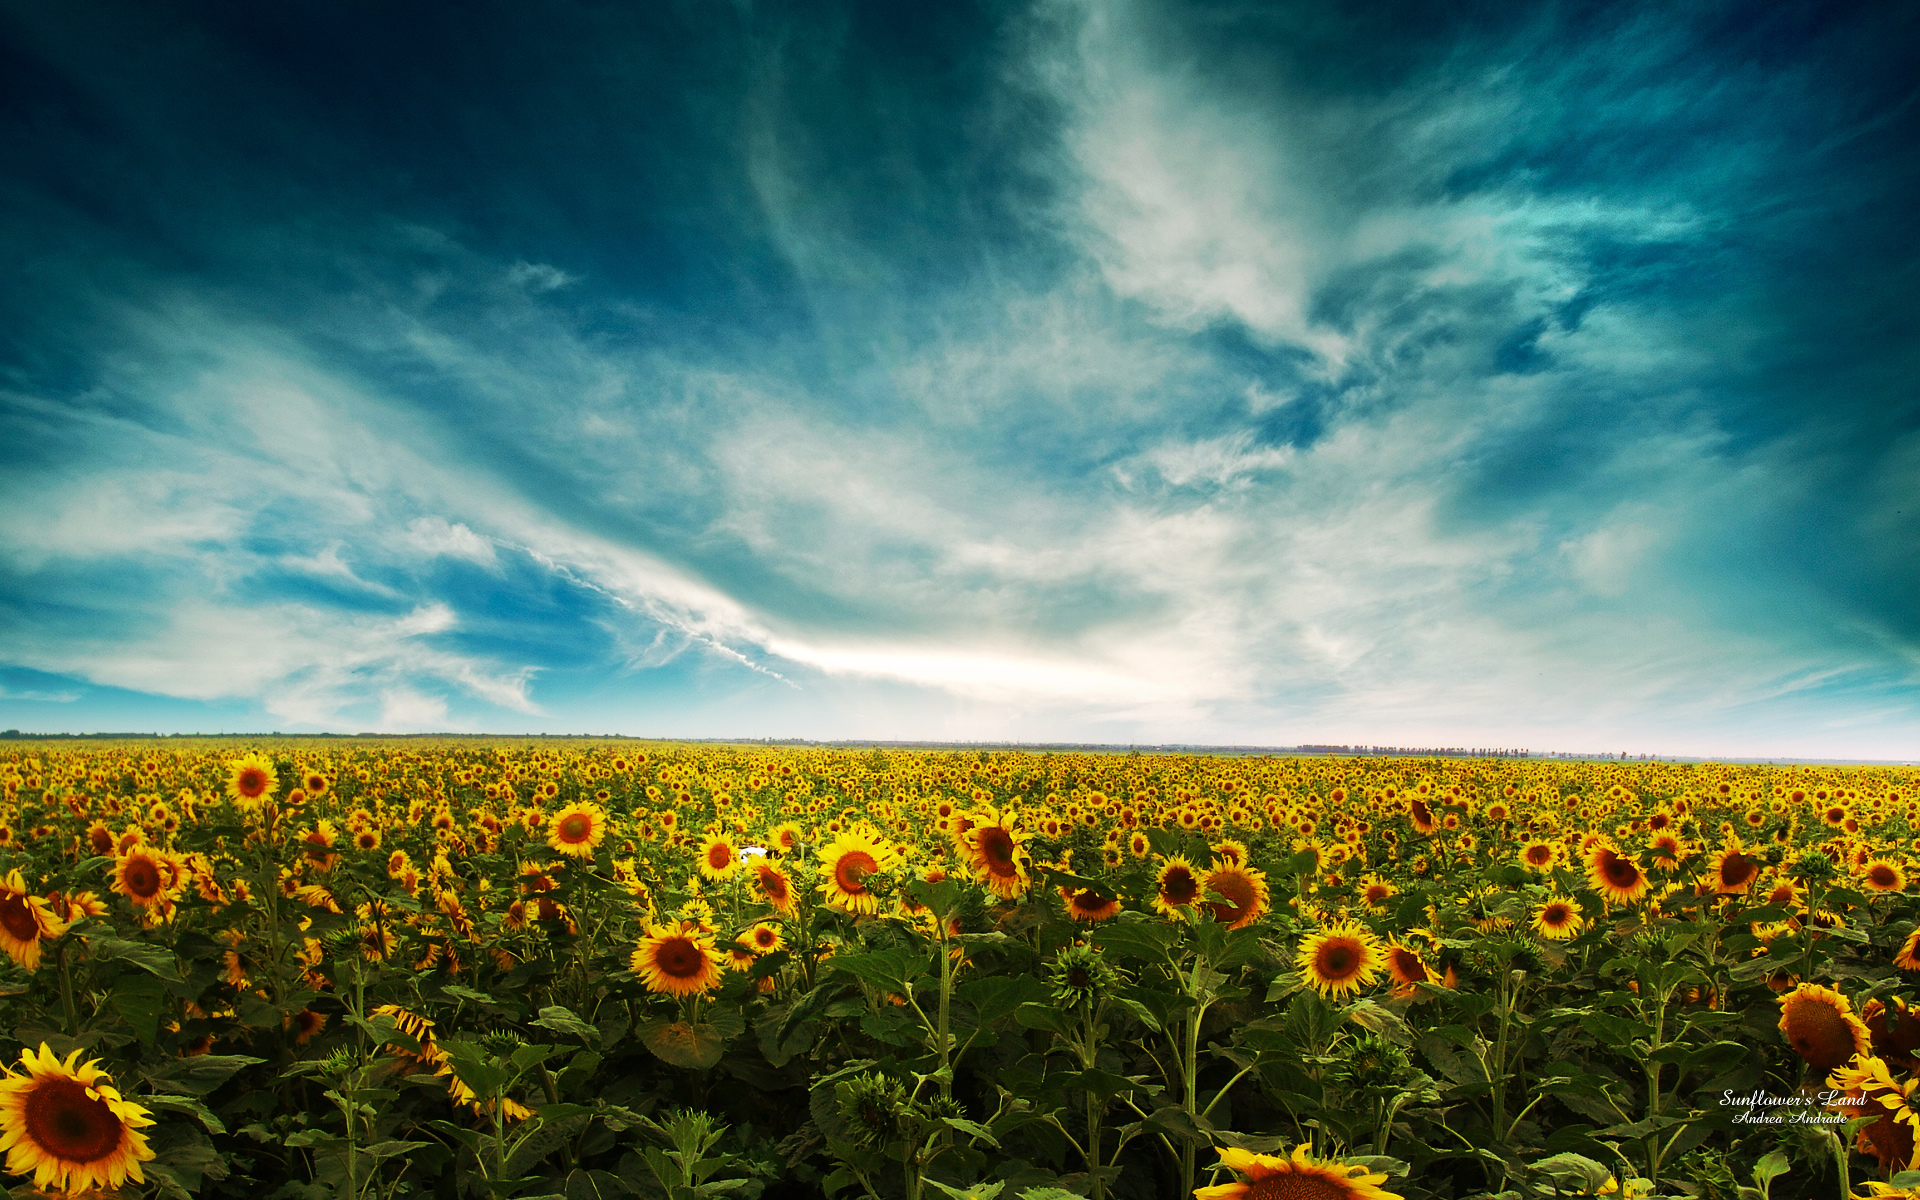 Free Scenery Wallpaper – Includes Beautiful Flowers, in Bloom and